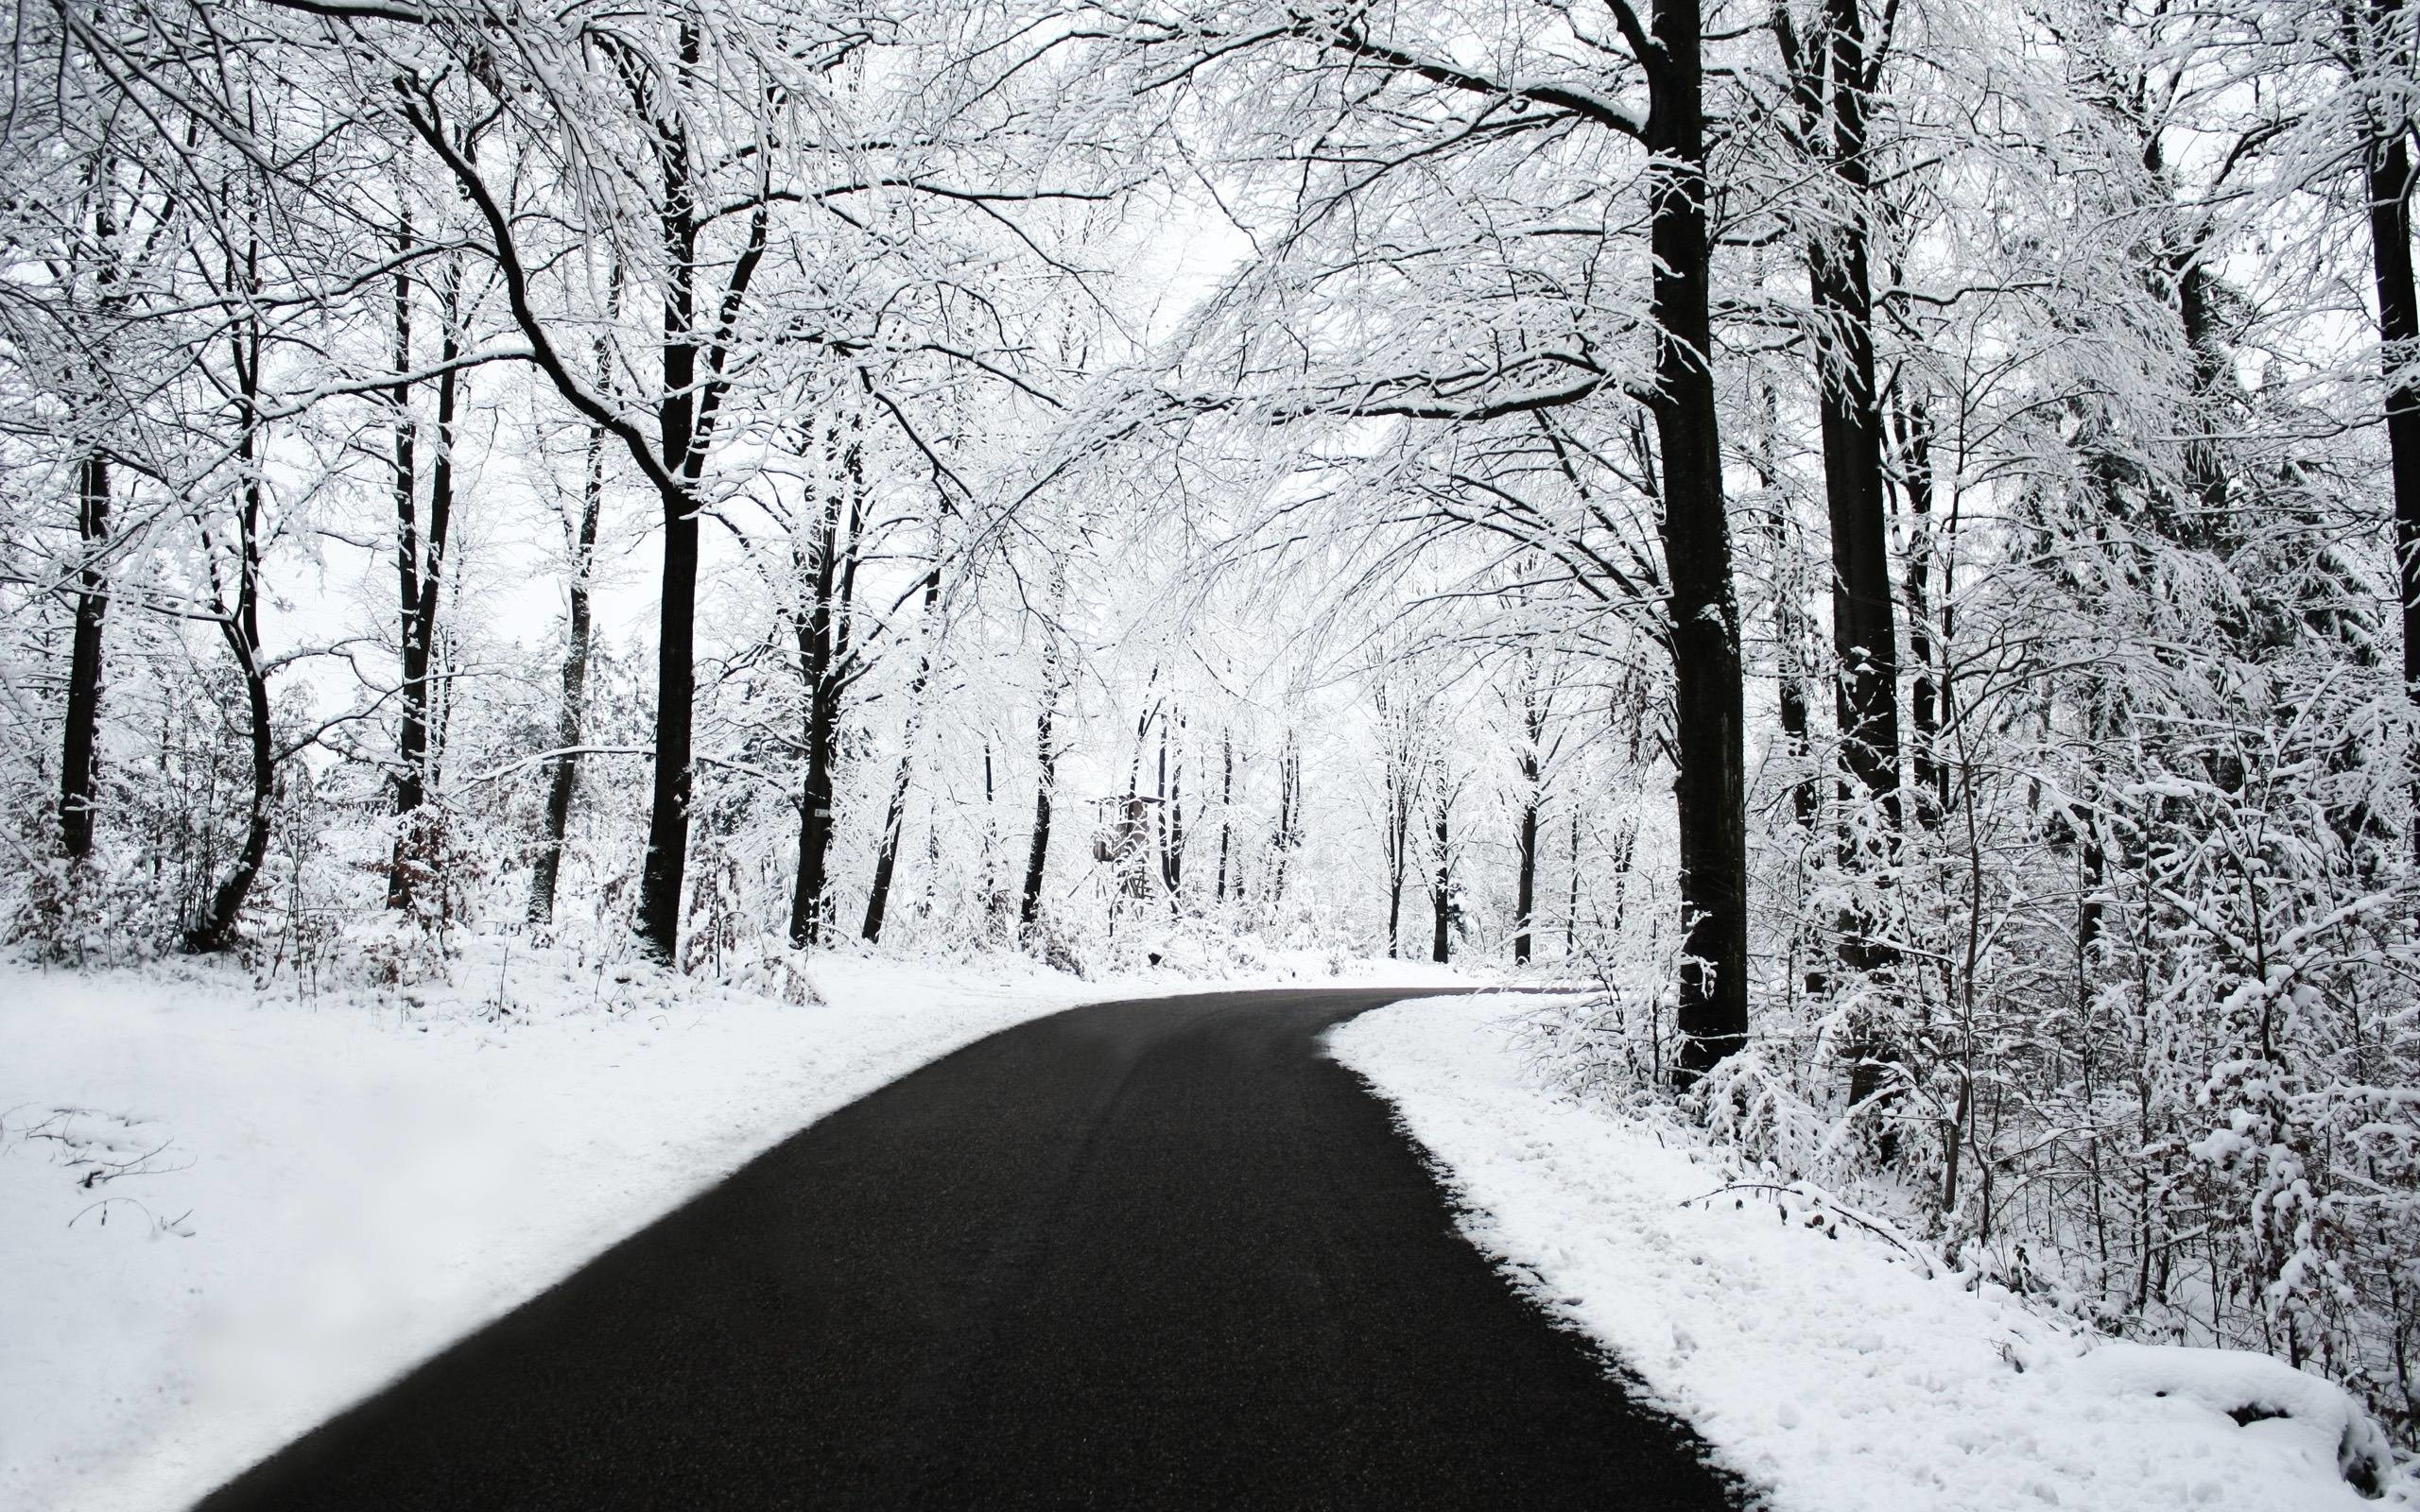 Wallpaper winter scenes 58 images 2560x1600 free images winter scenes voltagebd Image collections